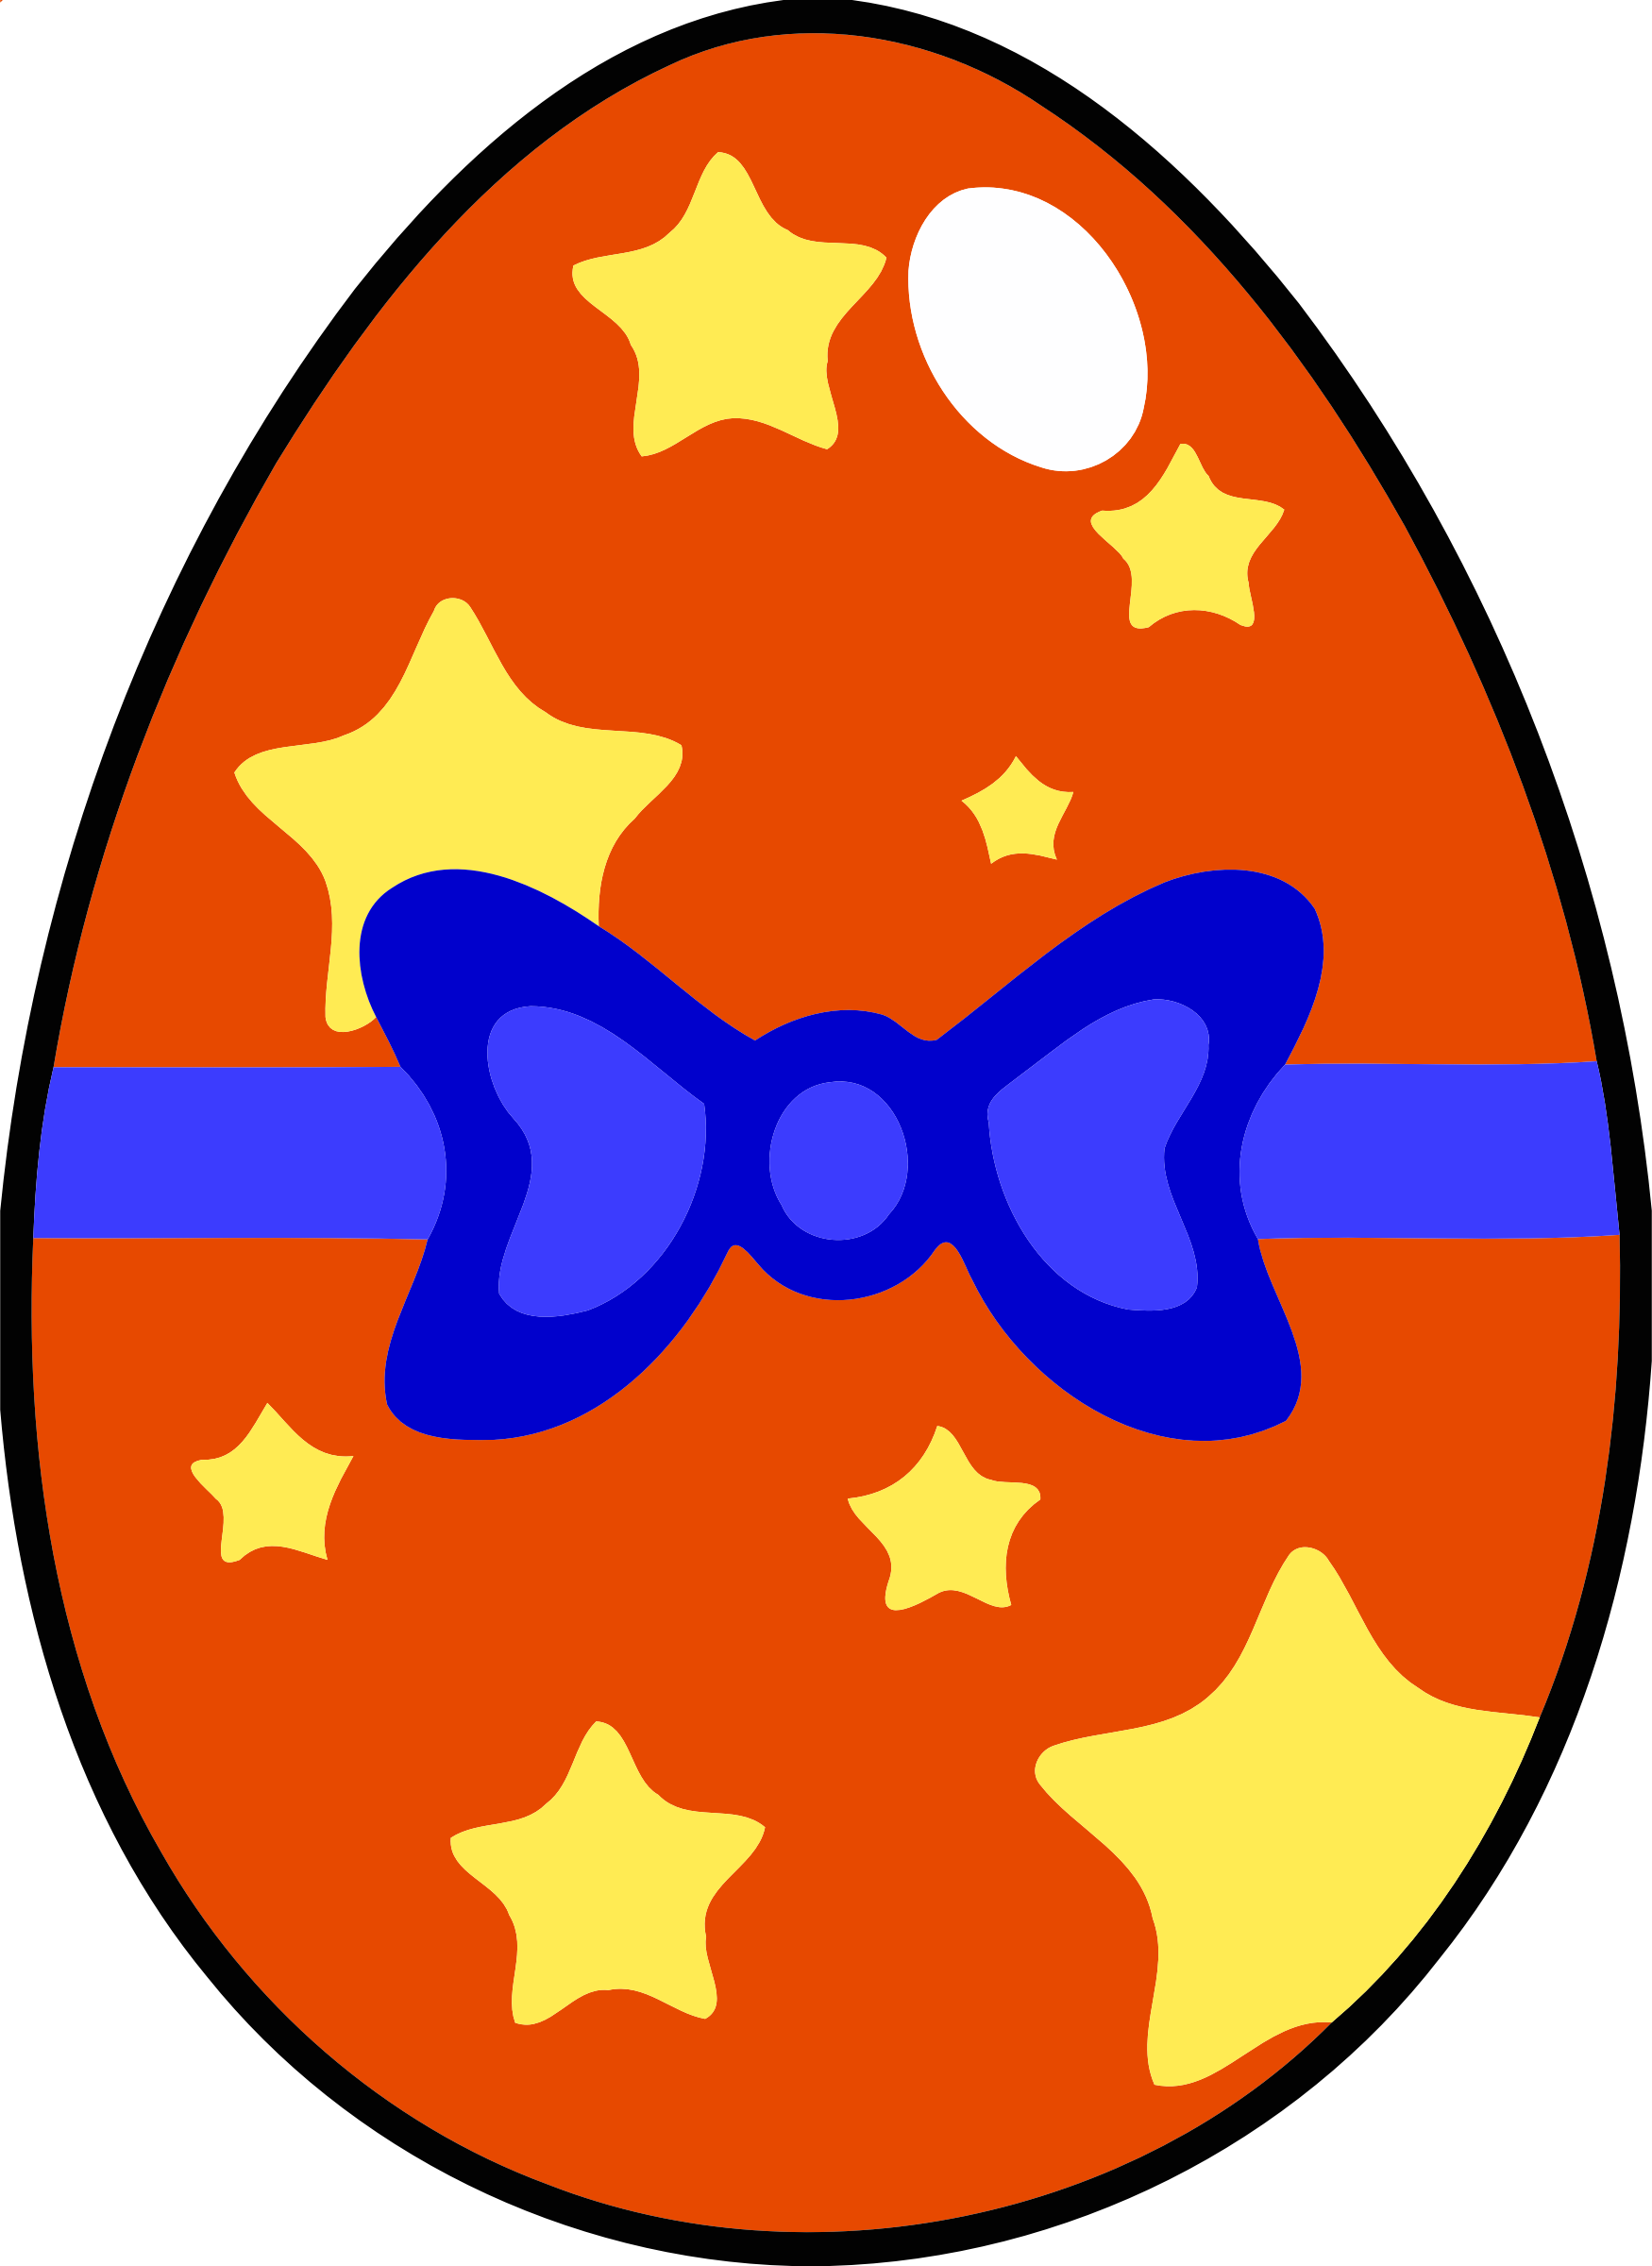 Decorated egg 9 by Firkin